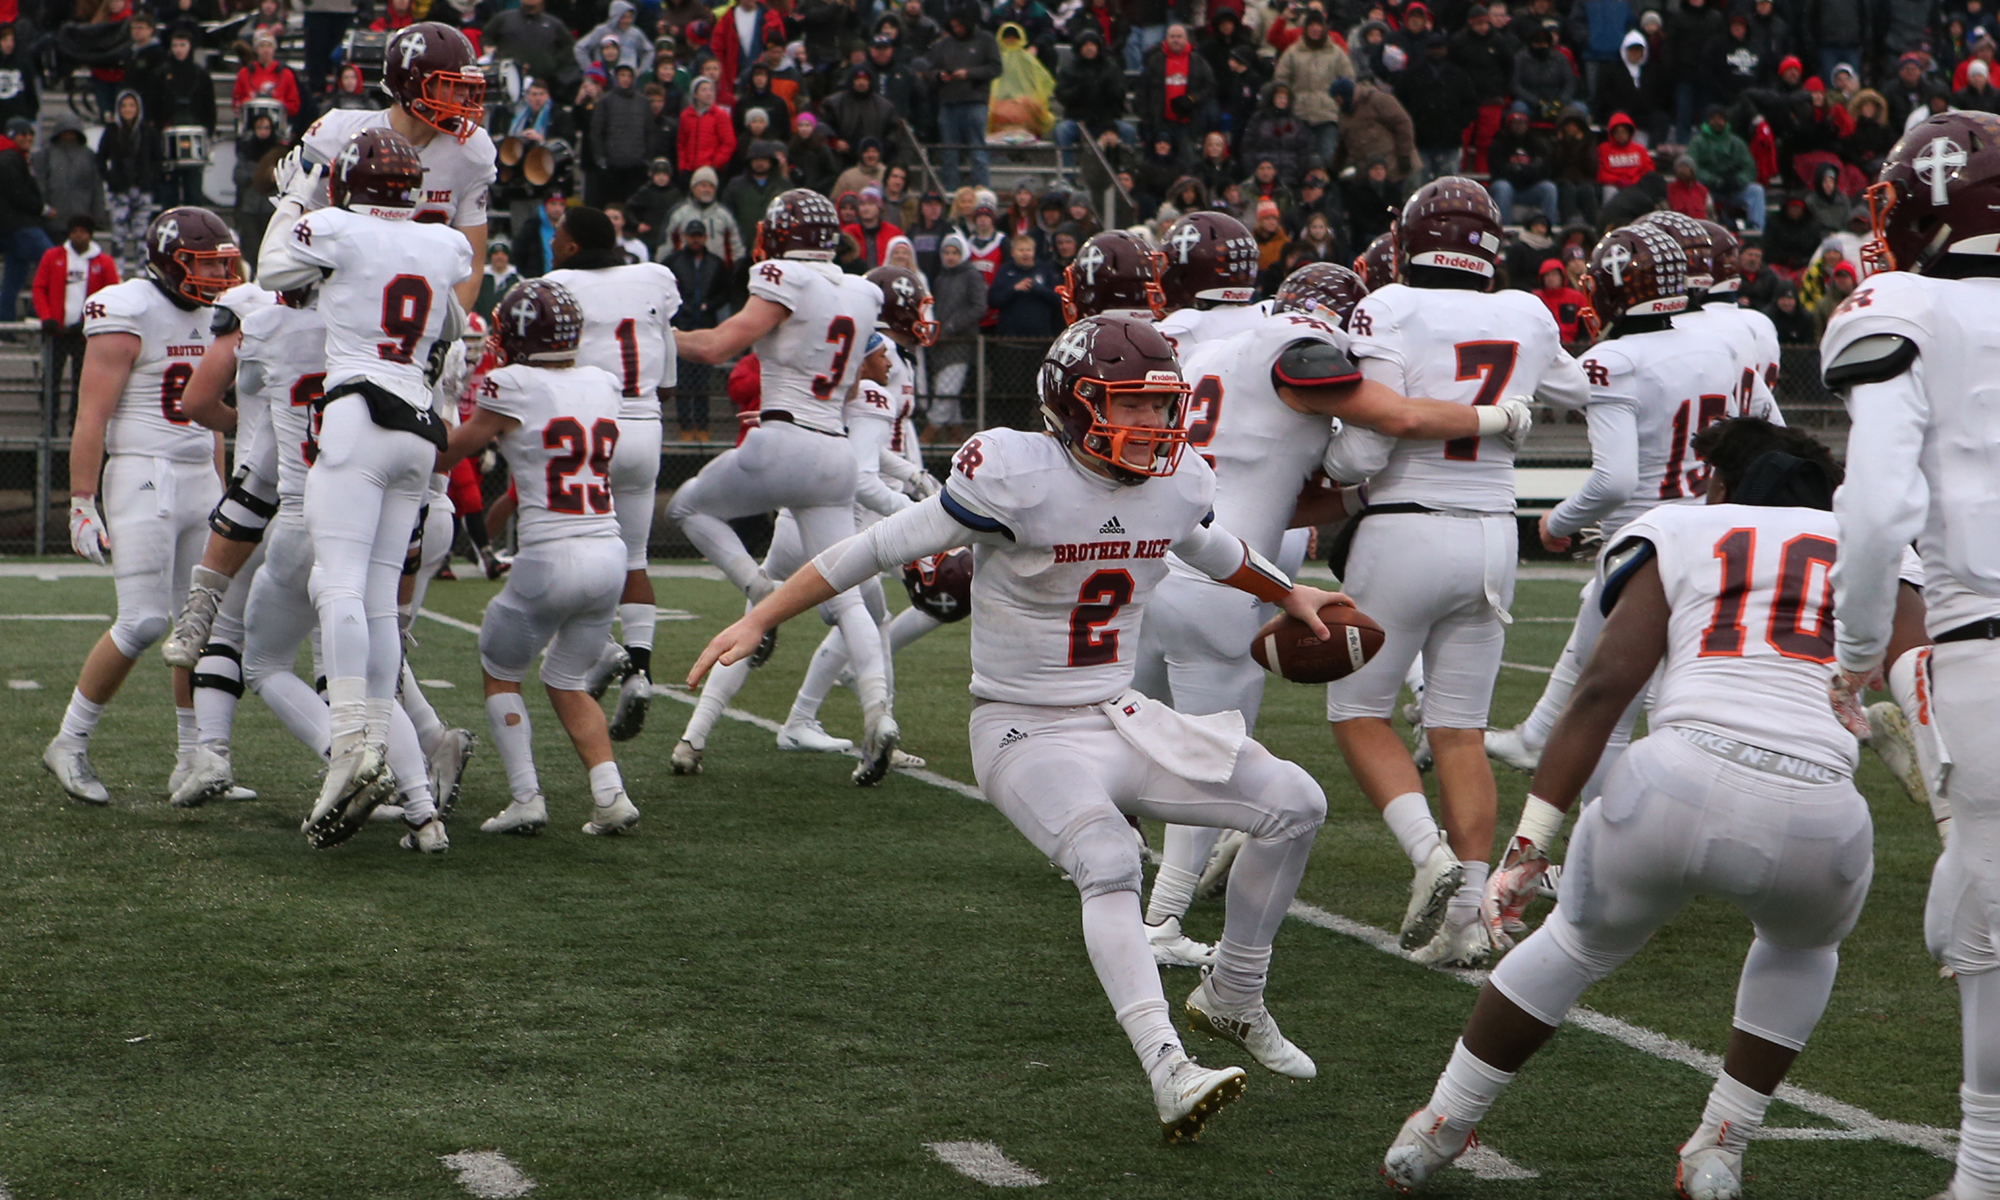 Brother Rice's John Bean (2) and his teammates celebrate after their 14-3 semifinal victory over Marist.